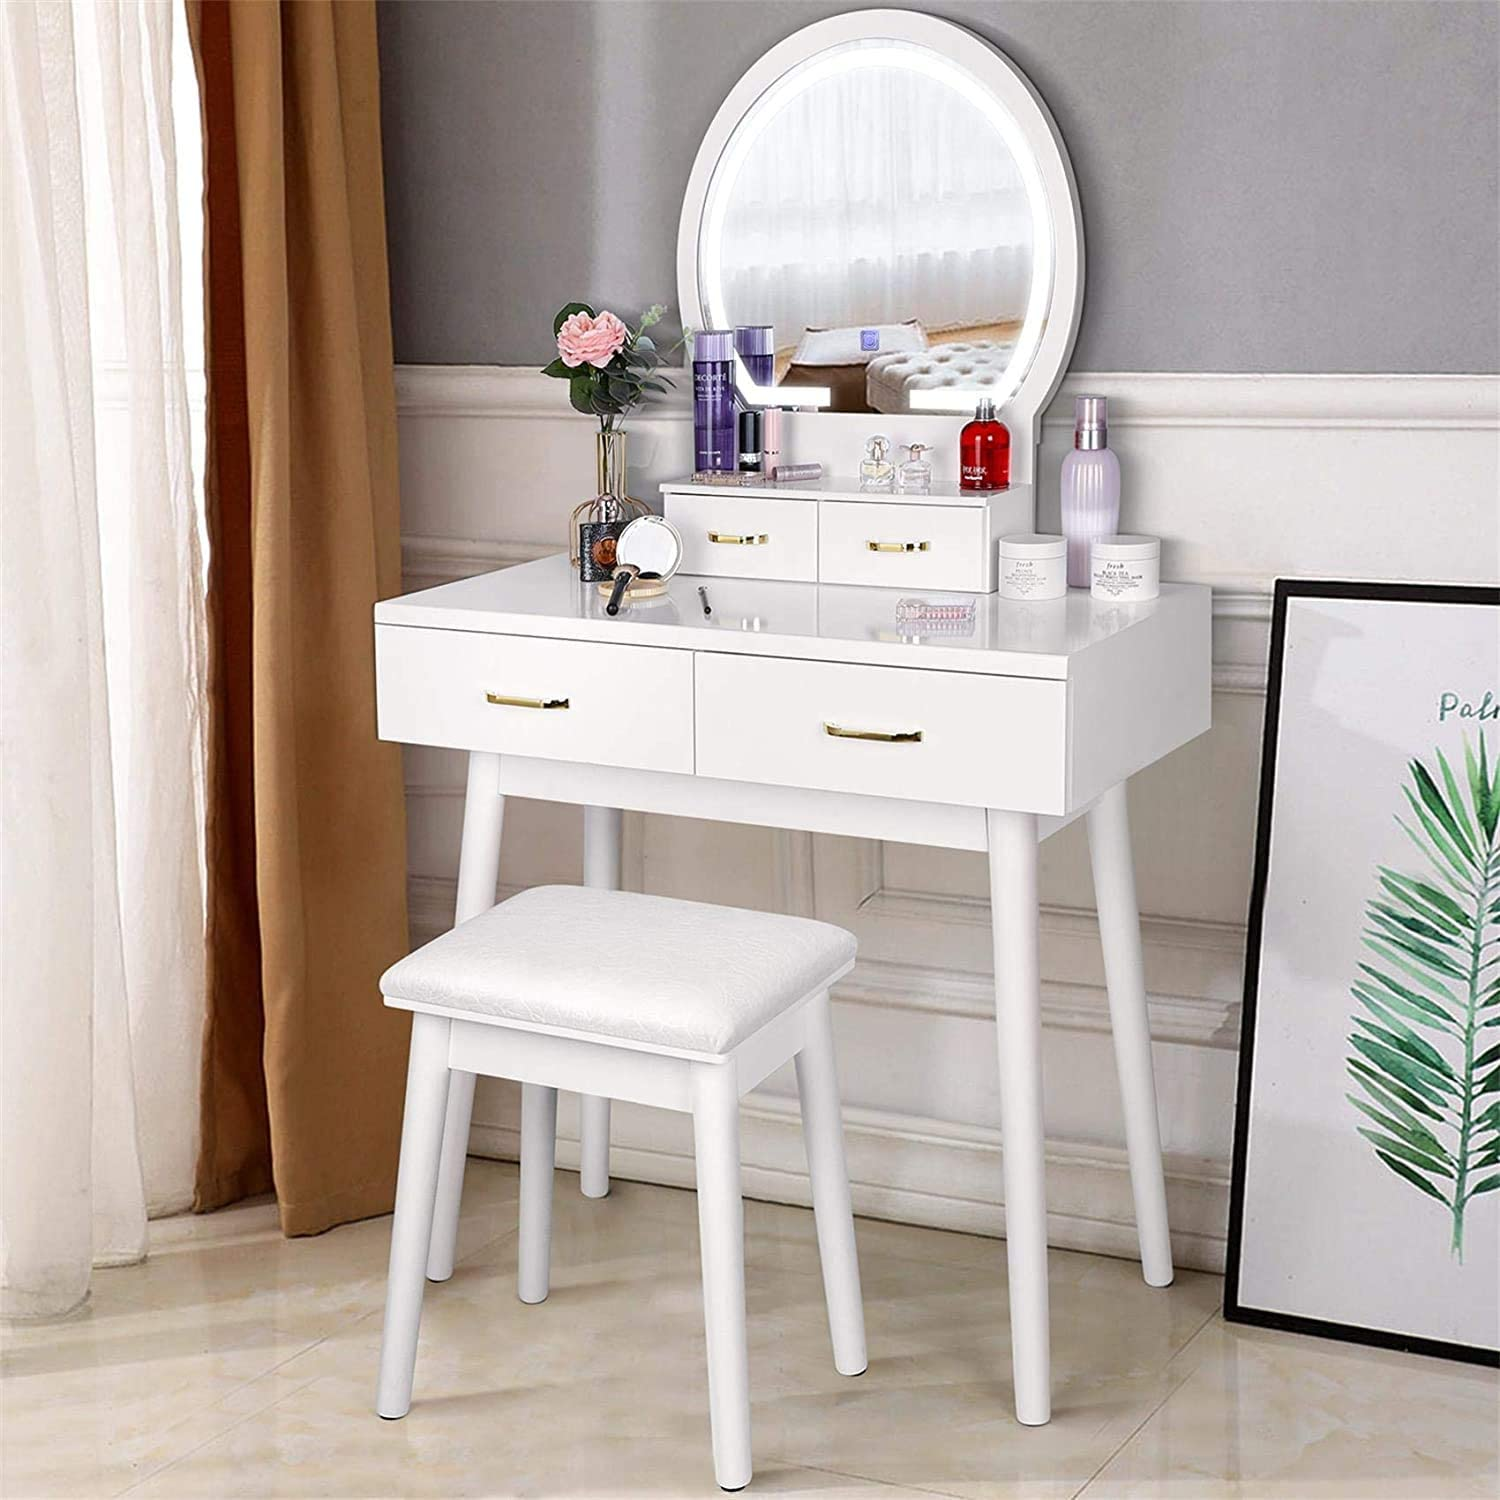 amzdeal Vanity Set with Lighted Mirror, Makeup Vanity Dressing Table with Touch Screen Dimming Mirror, 3 Color Lighting Modes 4 Drawers Dresser Desk and Cushioned Stool Set - White